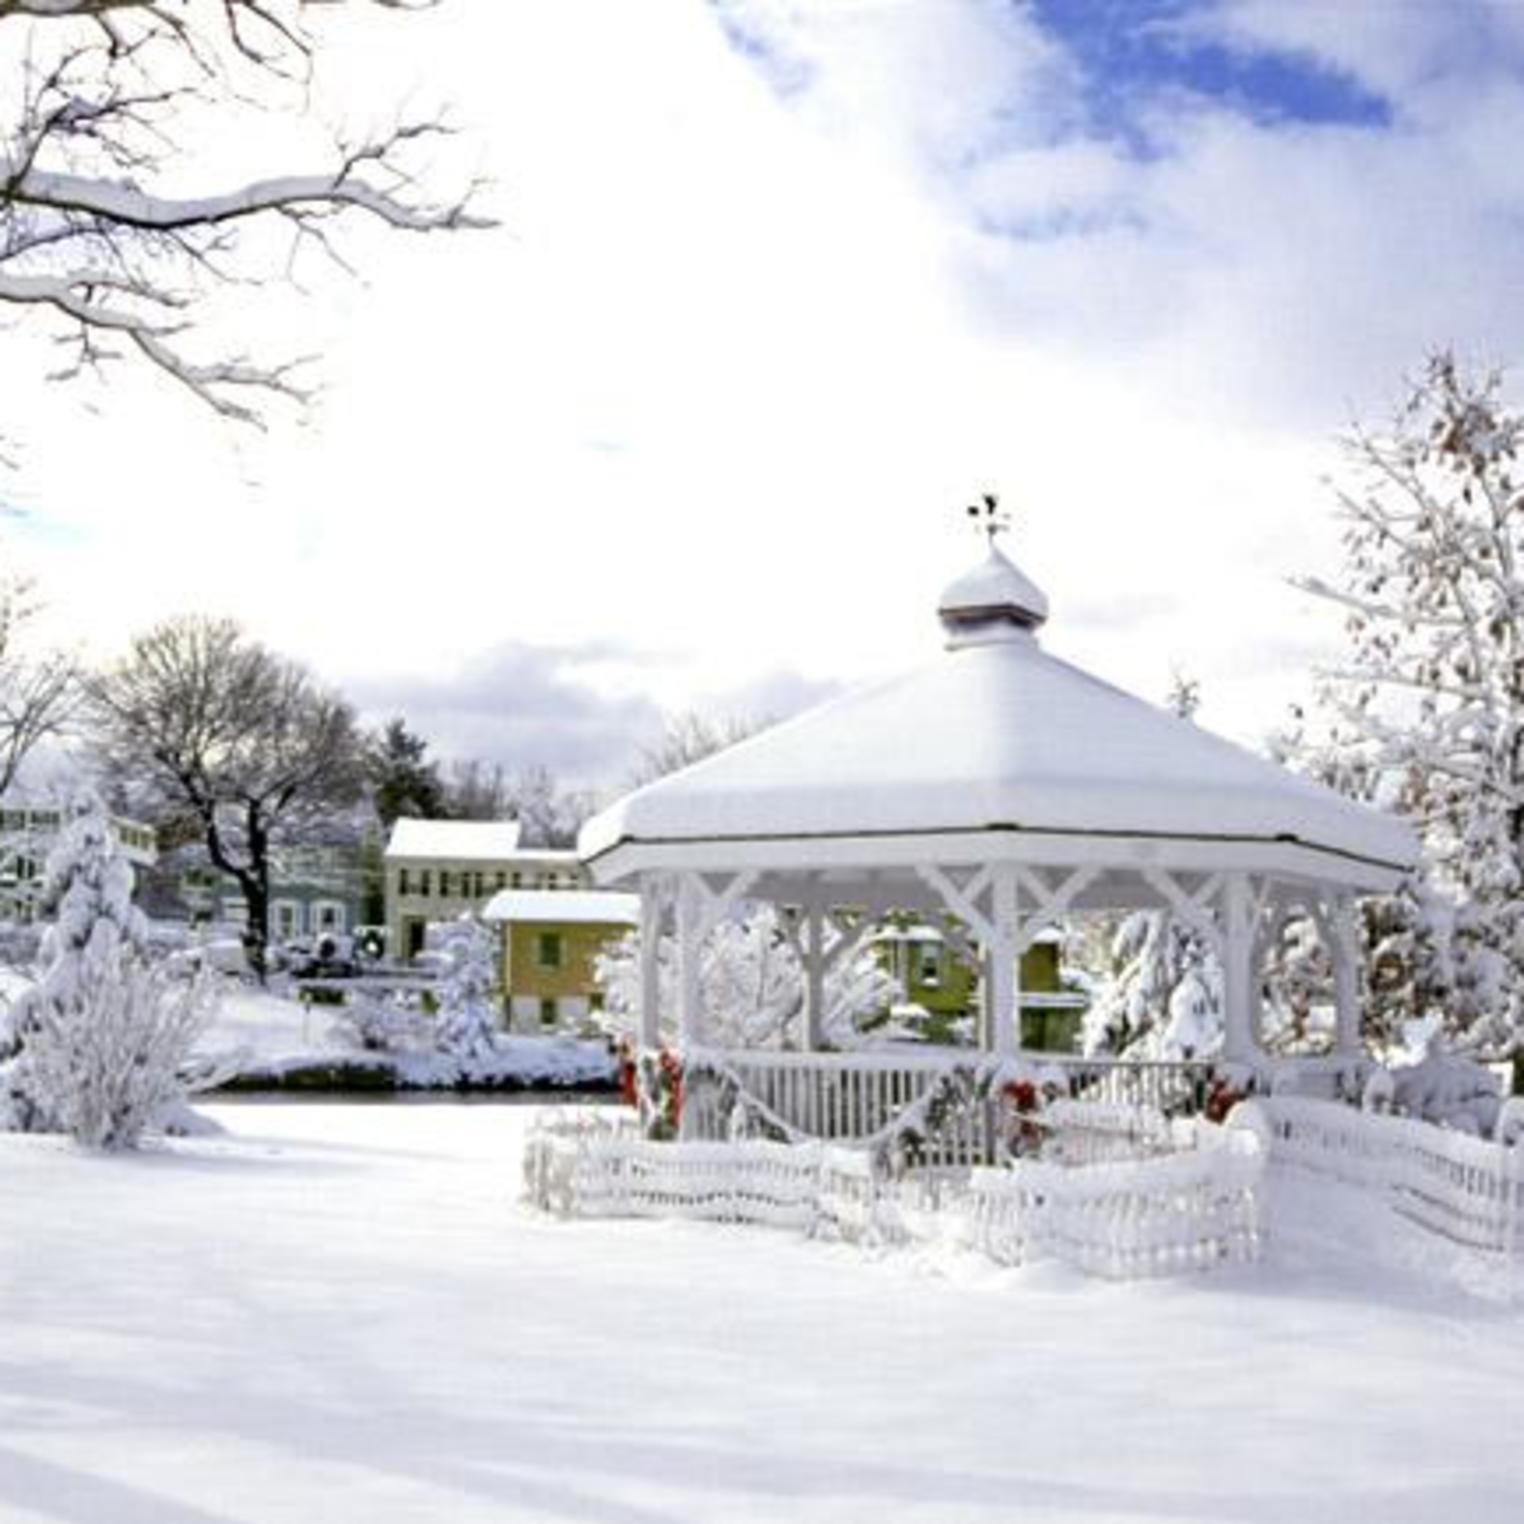 Winter gazebo at Children's Lake